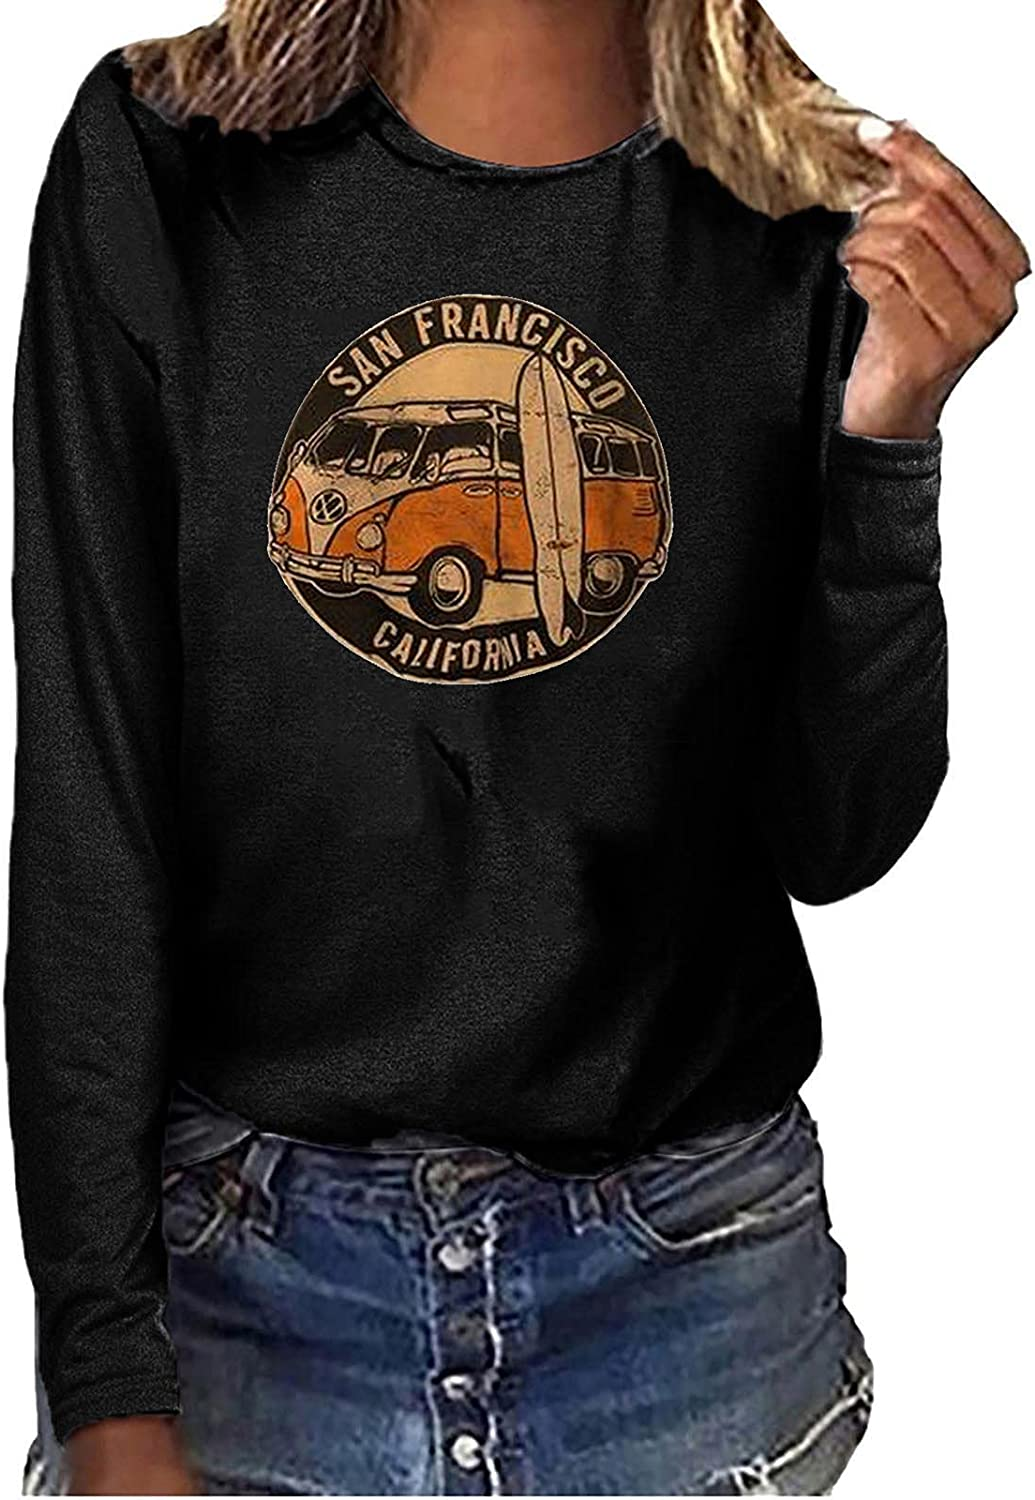 Womens Sweatshirt Vintage Car Printed Tops Loose Long Sleeves Pullover Round Collar Casual Blouse